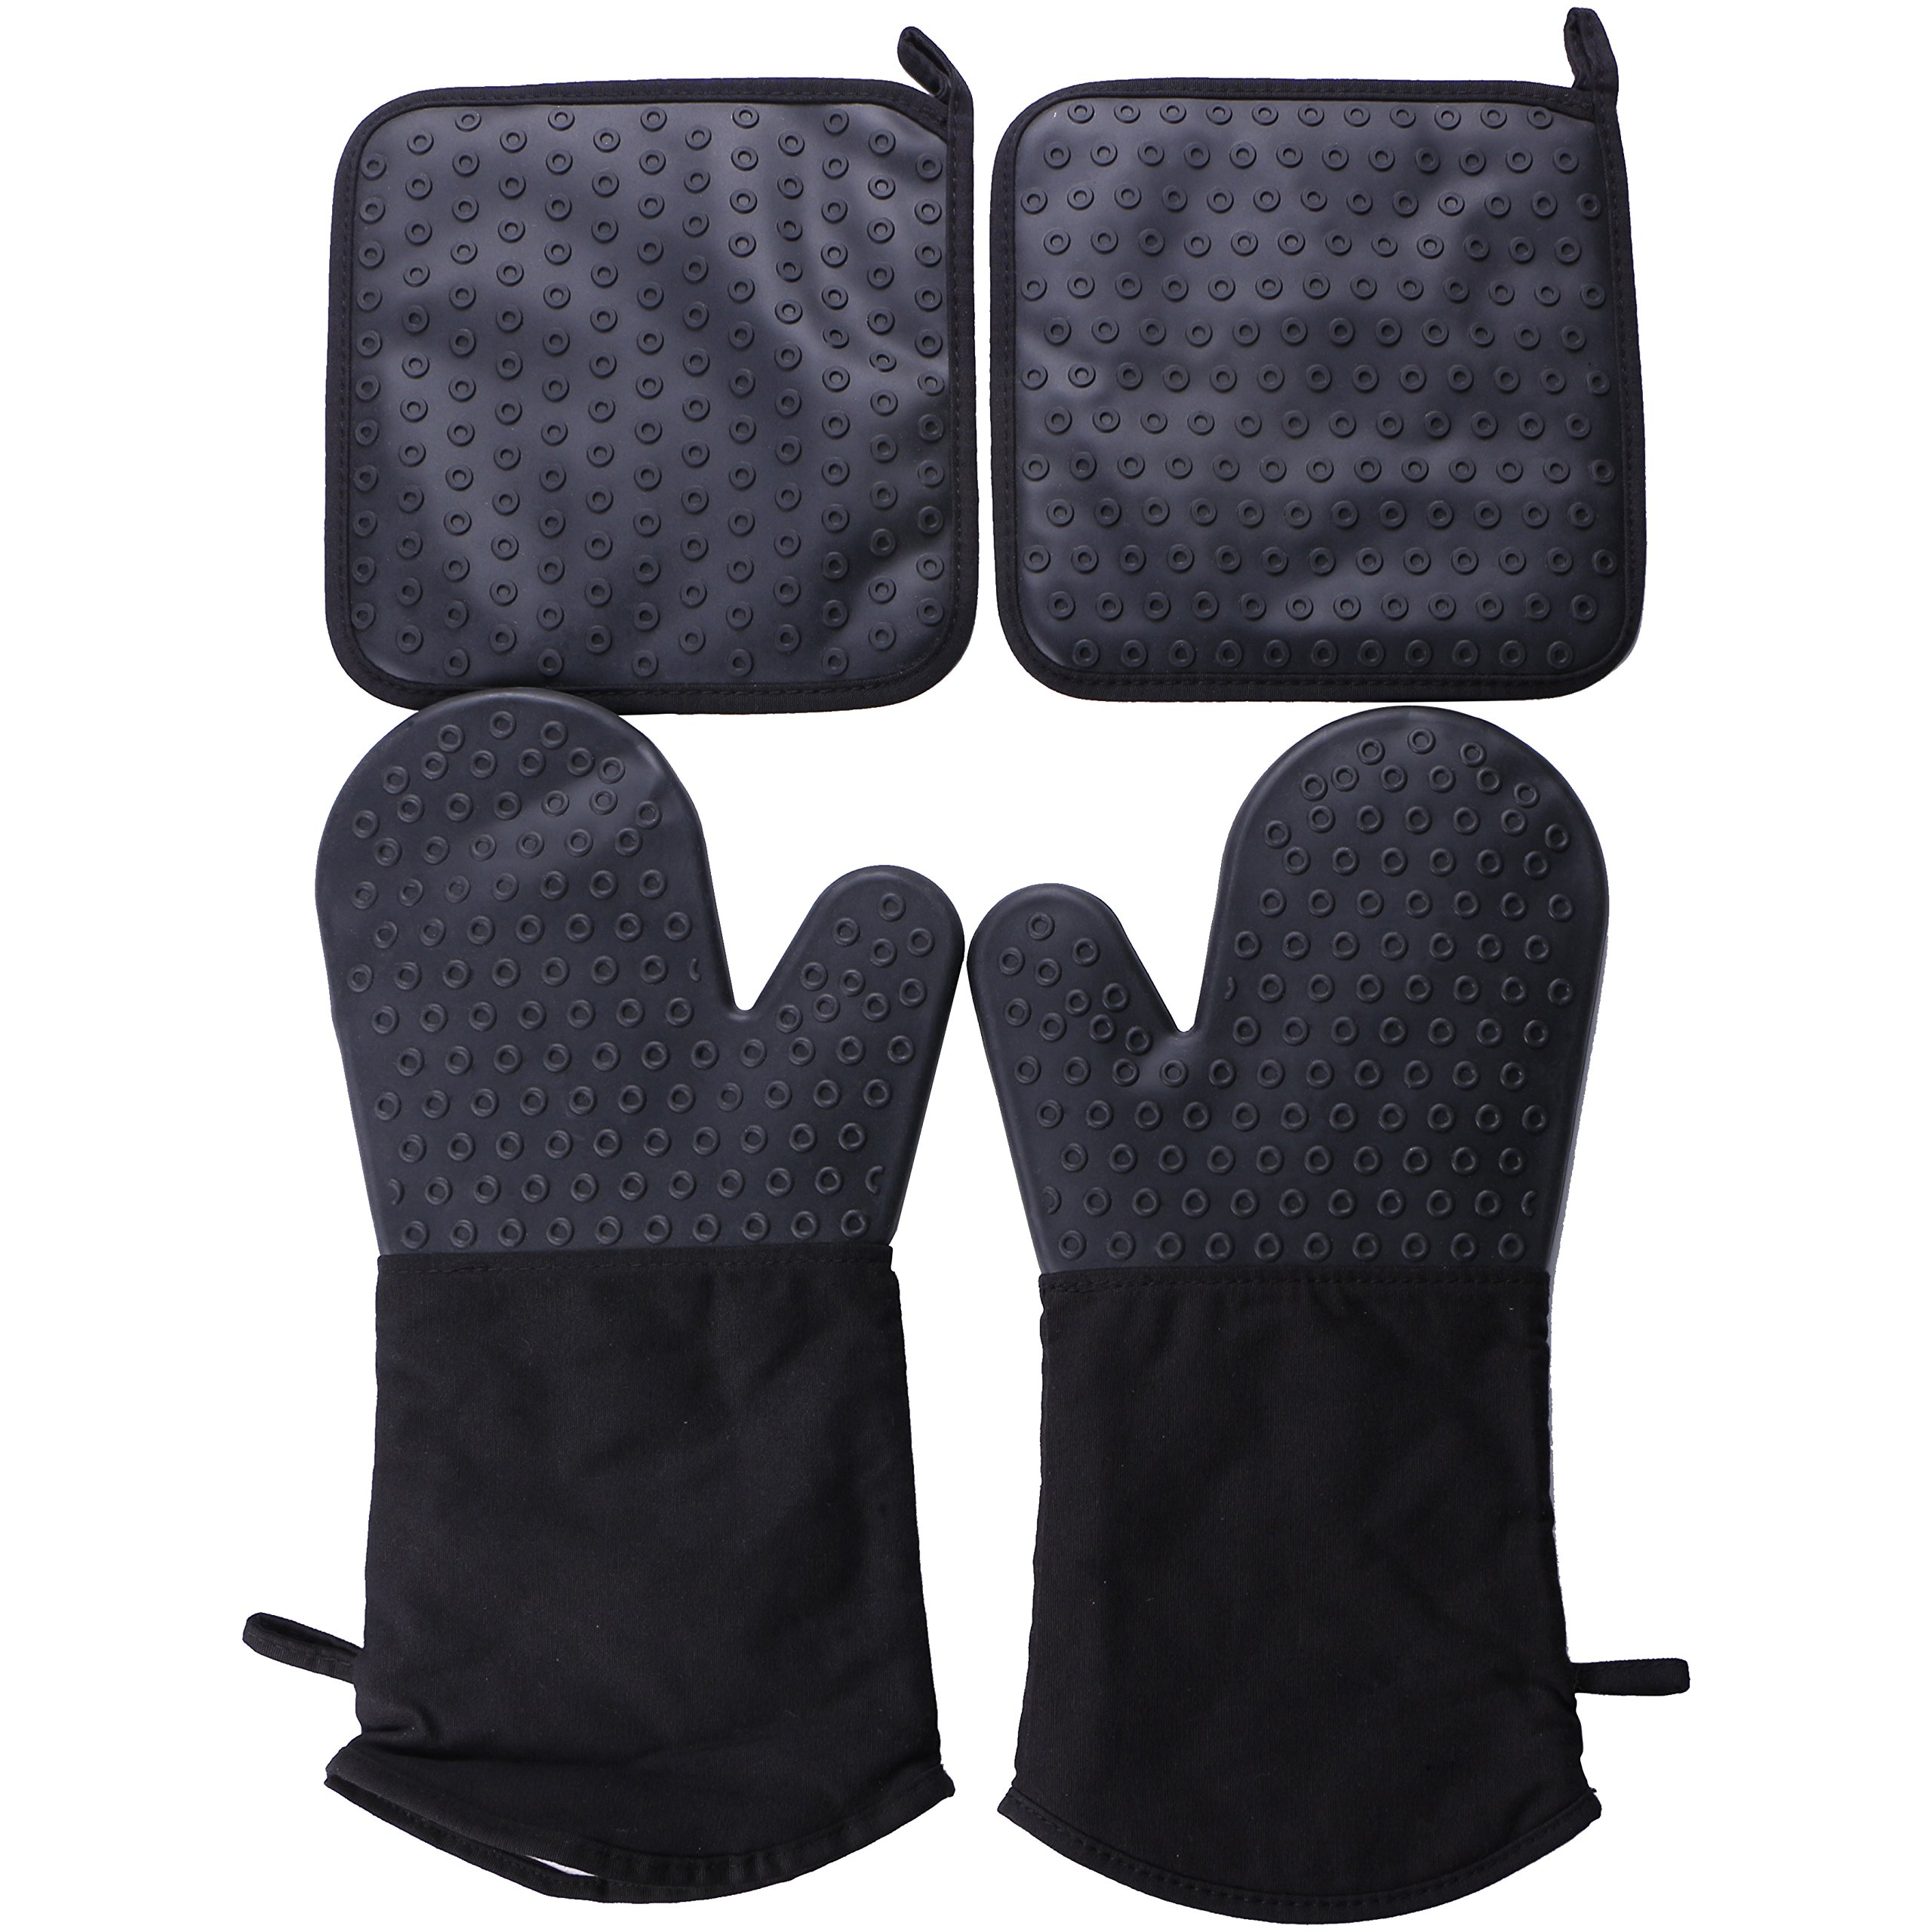 Webake 2pcs Silicone Oven Mitts Gloves and 2pcs Oven Pot Holders Set for Finger Hand Wrist Protection by Webake